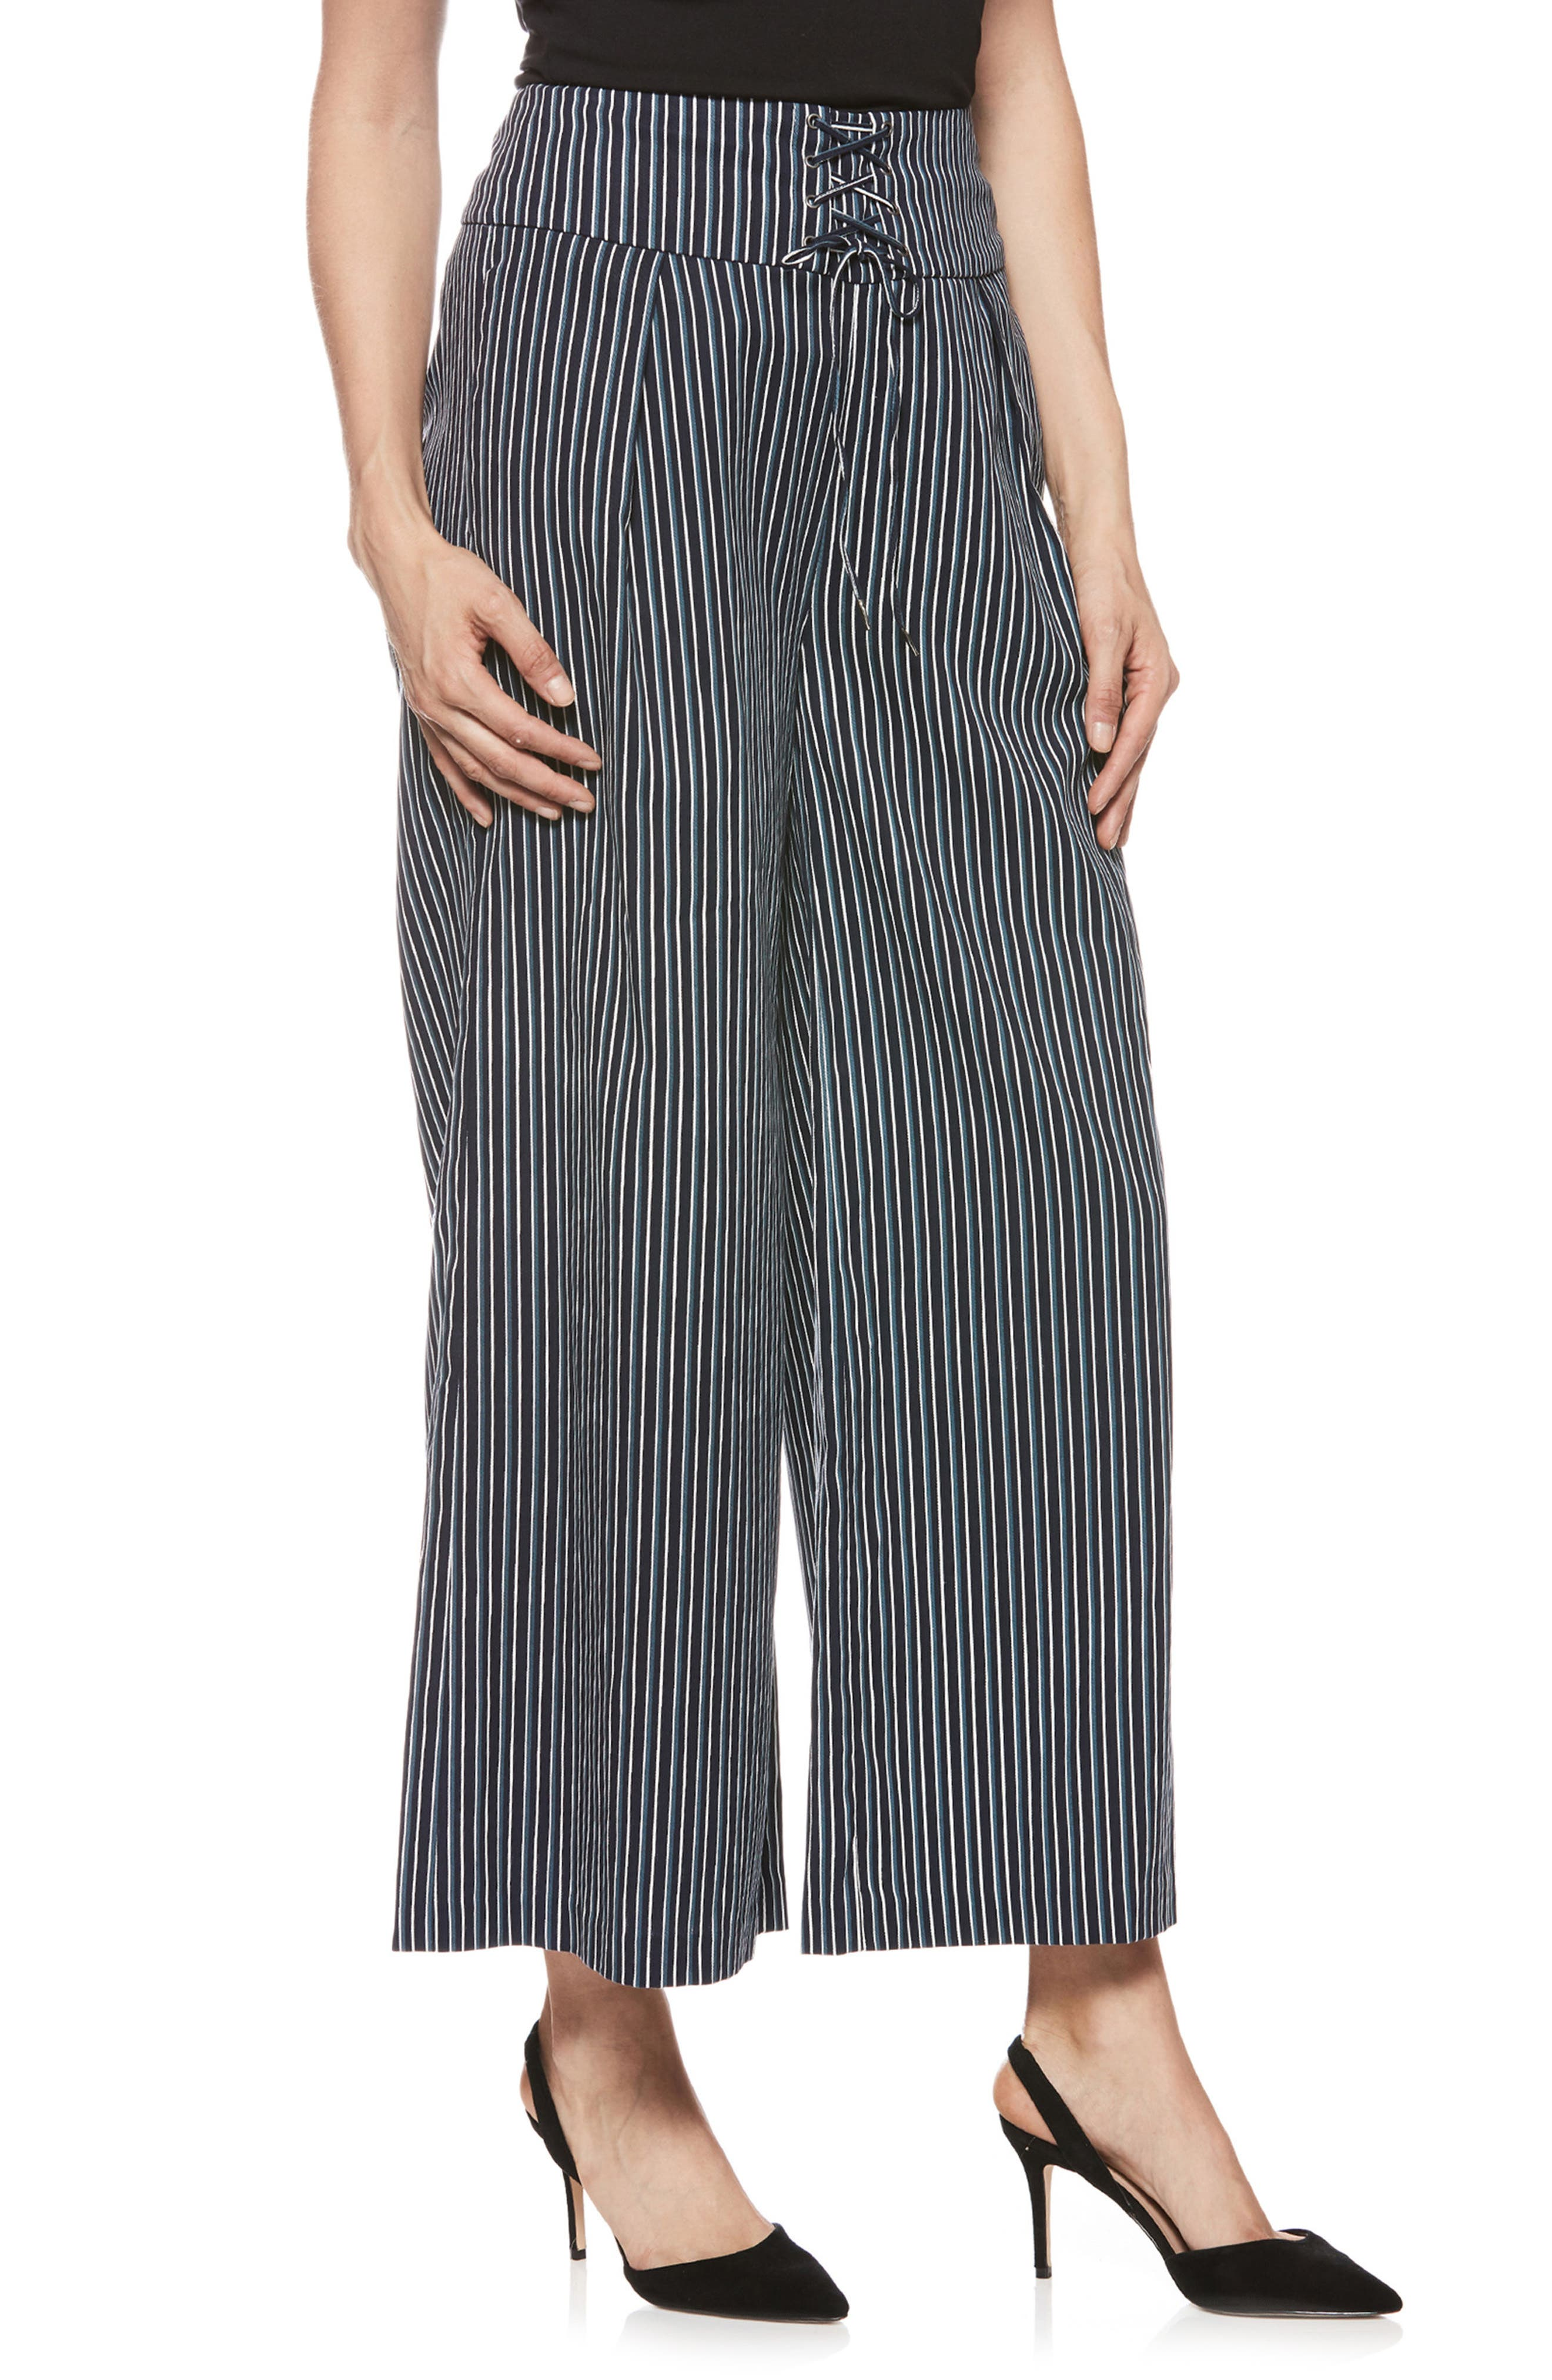 Charisma Pants,                         Main,                         color, Rich Navy Multi